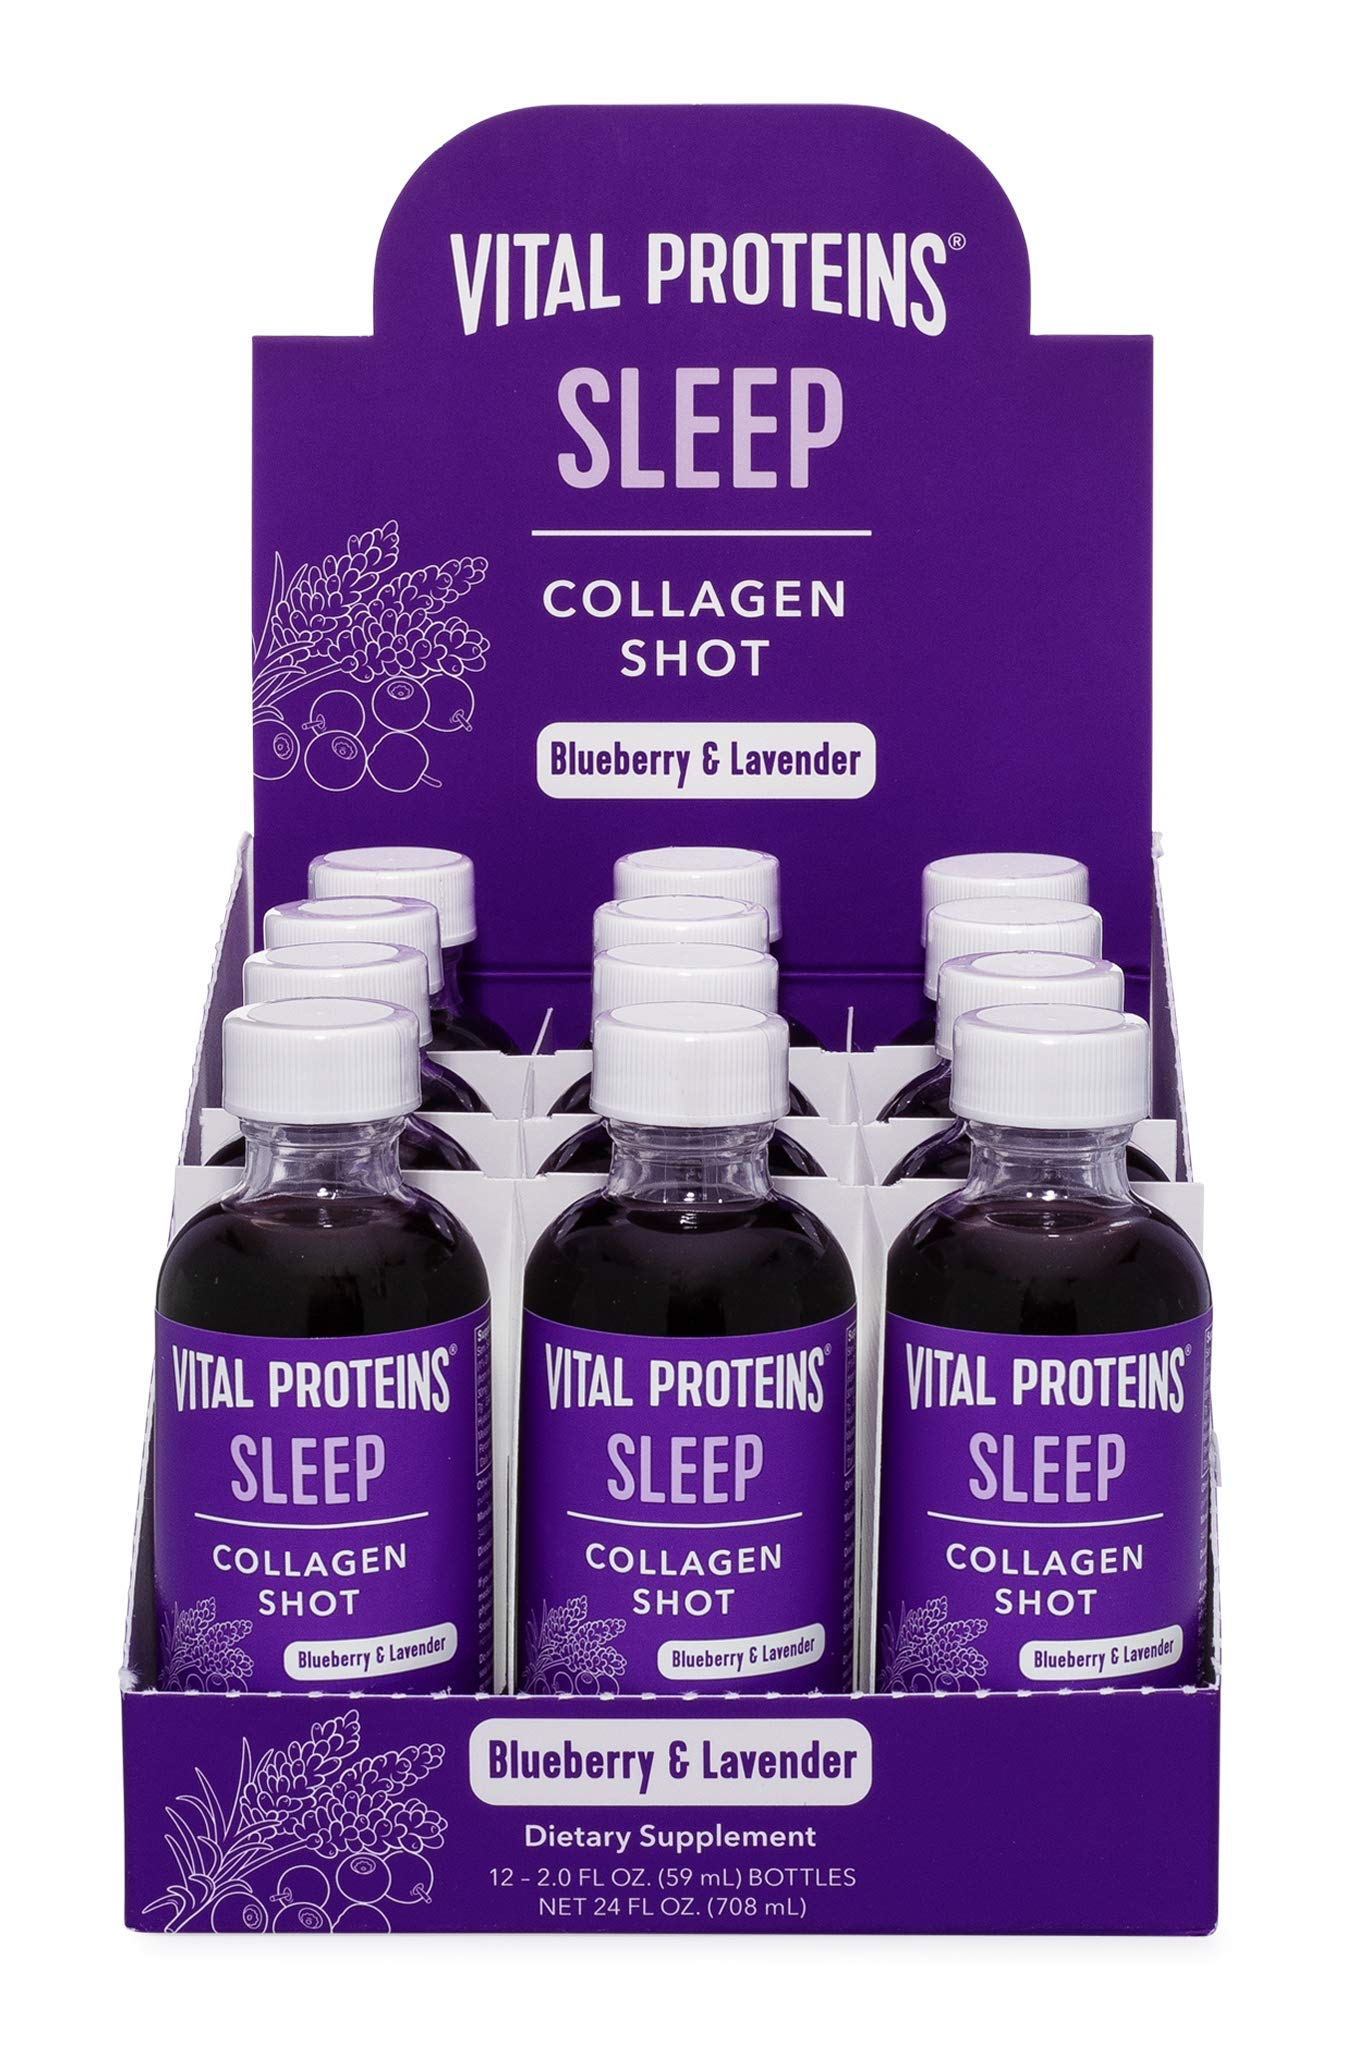 Amazon.com: Vital Proteins Collagen Wellness Shot - Sleep, 12 Pack - GABA, Magnesium, and Melatonin: Health & Personal Care